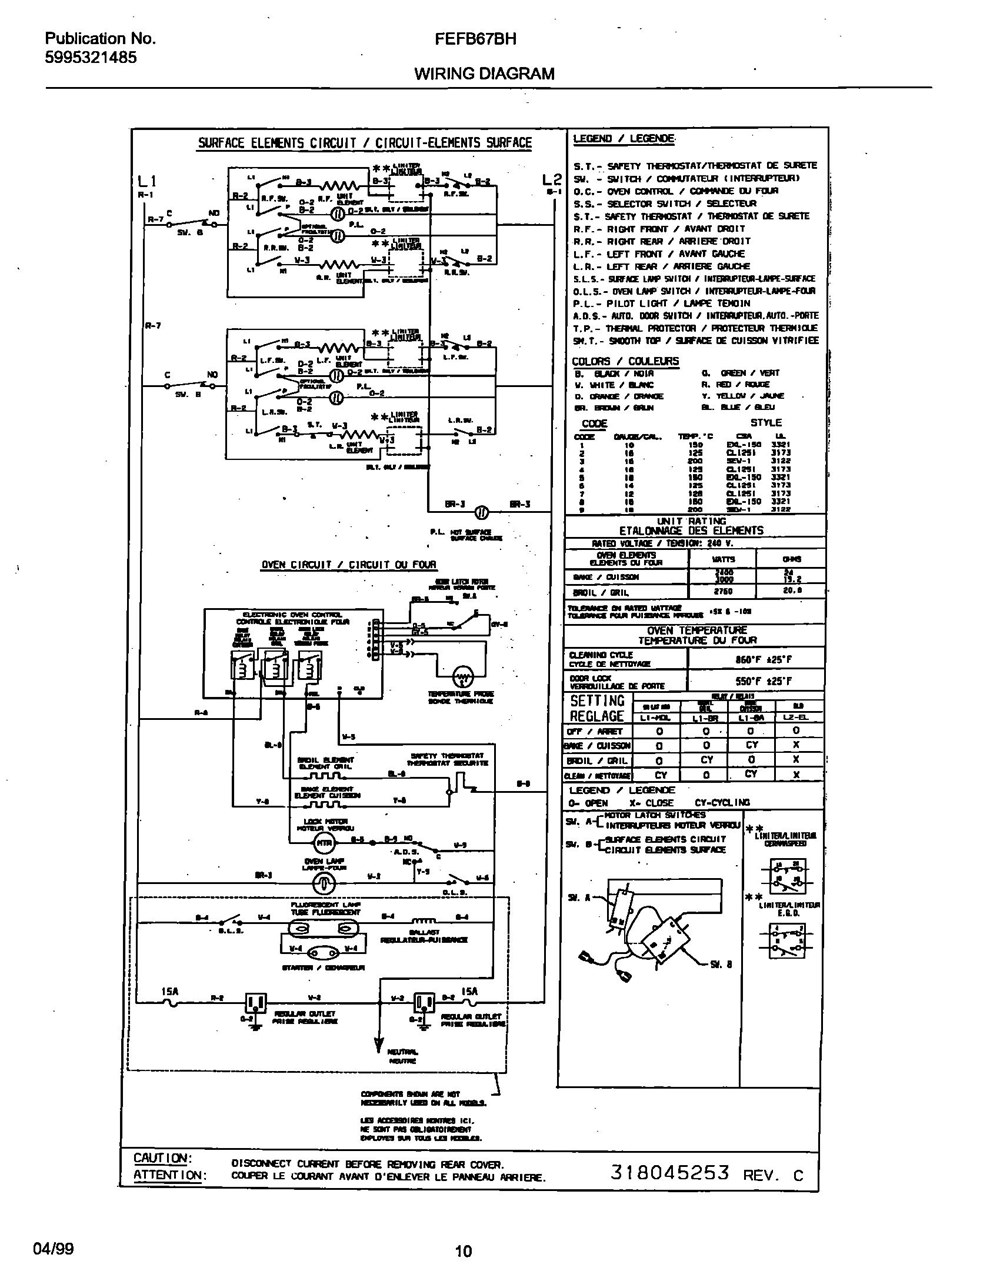 Fefb67bhwa Frigidaire Company Backguard 05body 07top Drawer 09door 01cover 10wiring Diagram